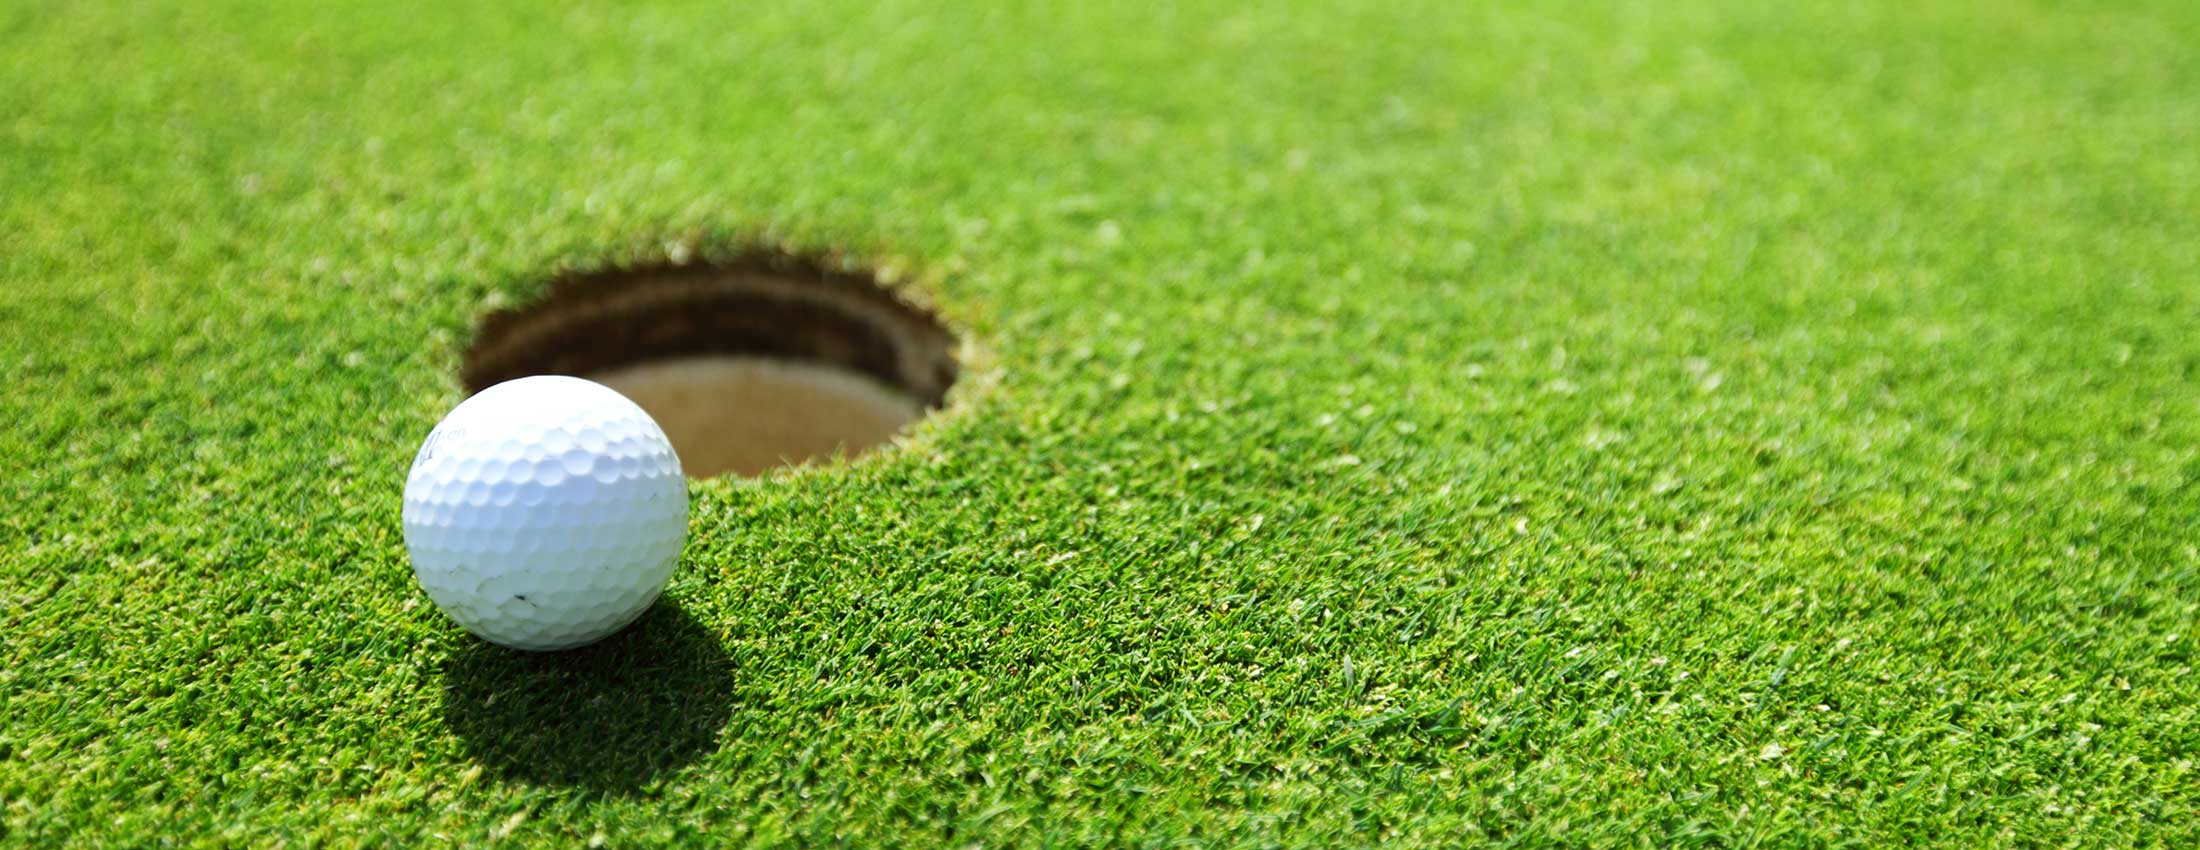 Managing Premier Golf Courses Without Chemicals